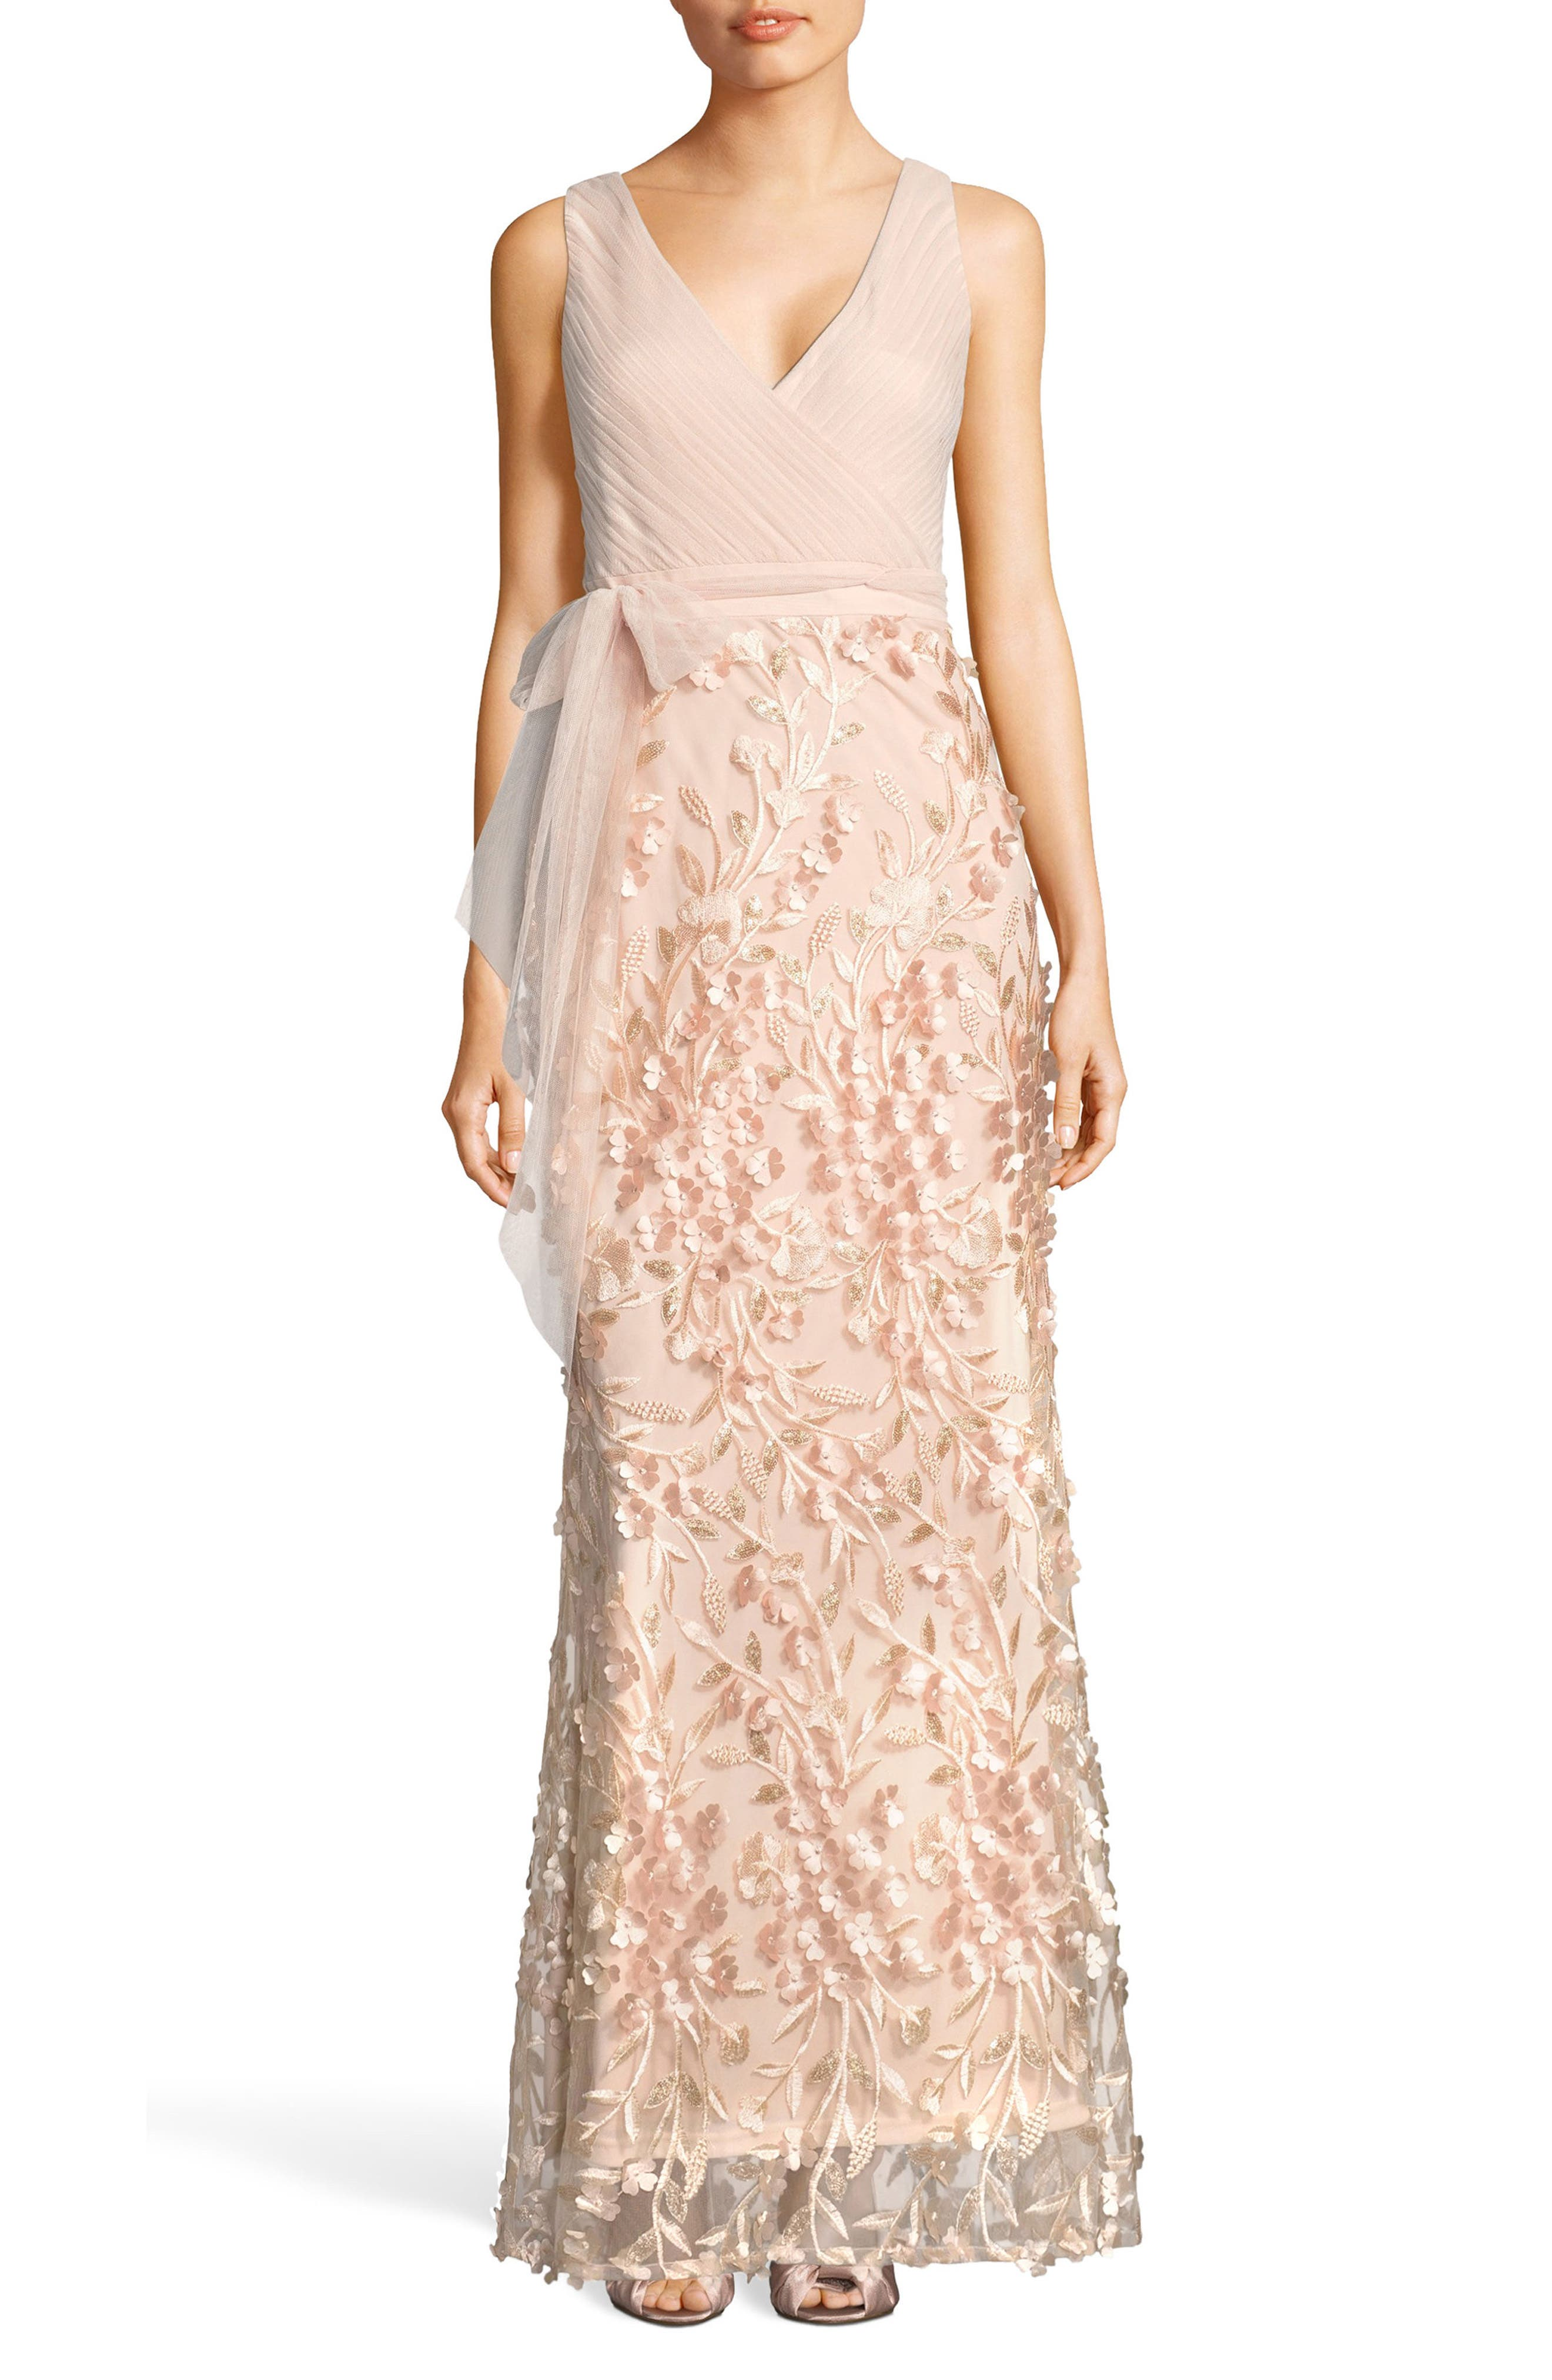 Adrianna Papell Petal Embellished Tulle Gown